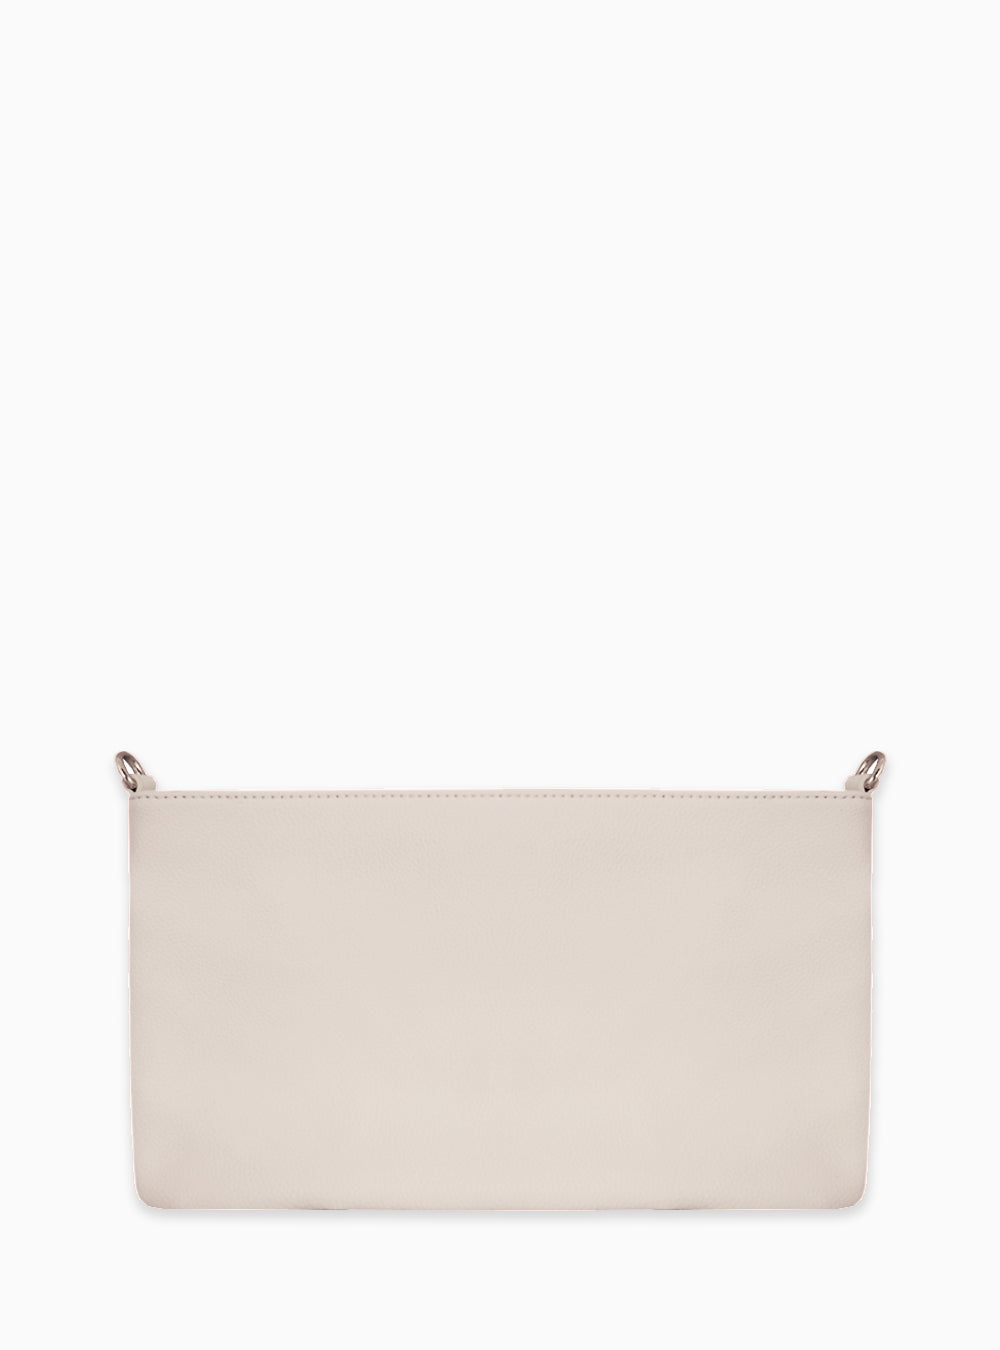 Taupe pocket - Vegan leather